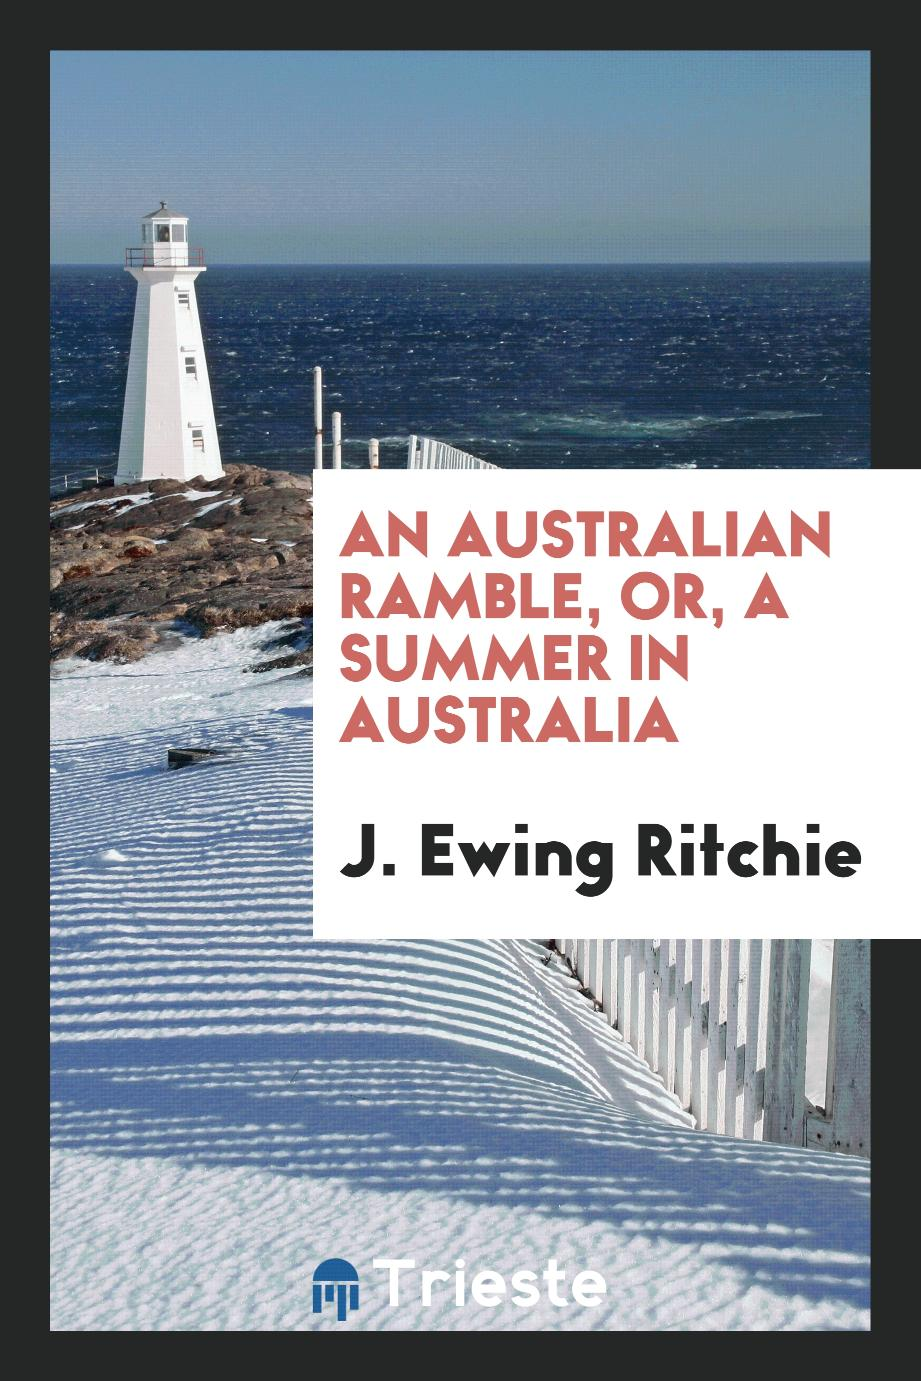 An Australian ramble, or, a summer in Australia